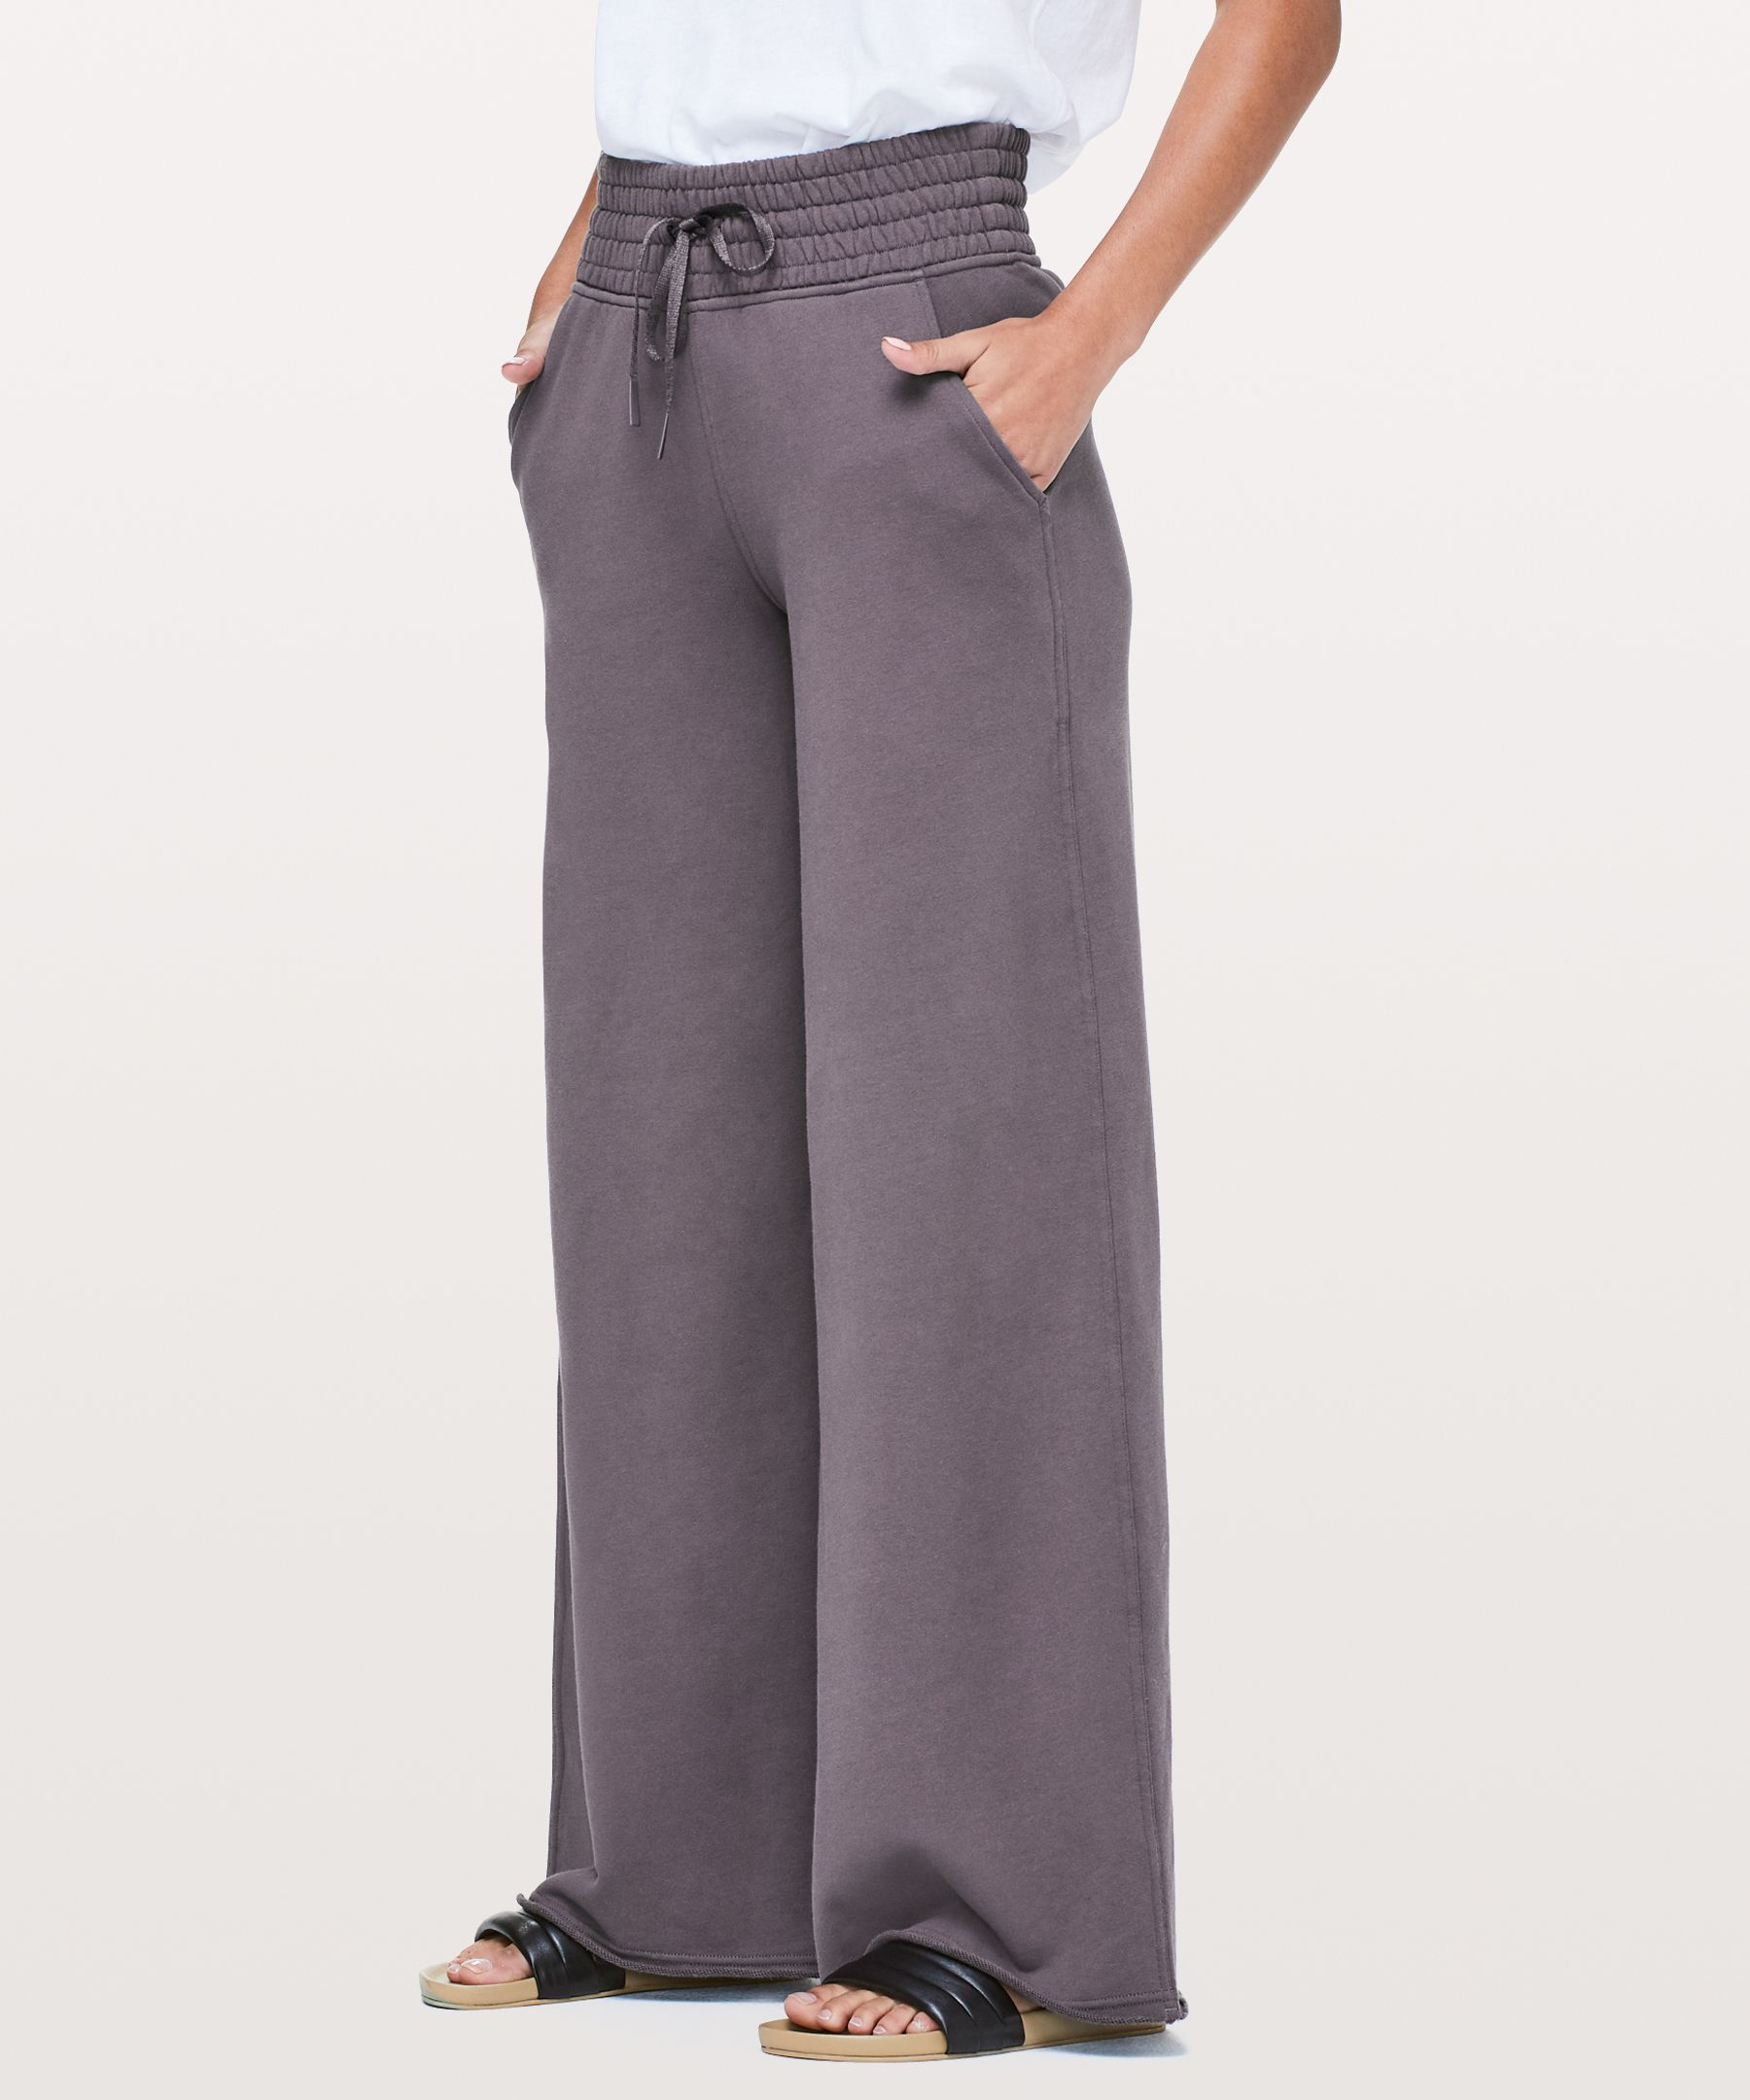 "Radiant Rhapsody Pant 32"" by Lululemon"